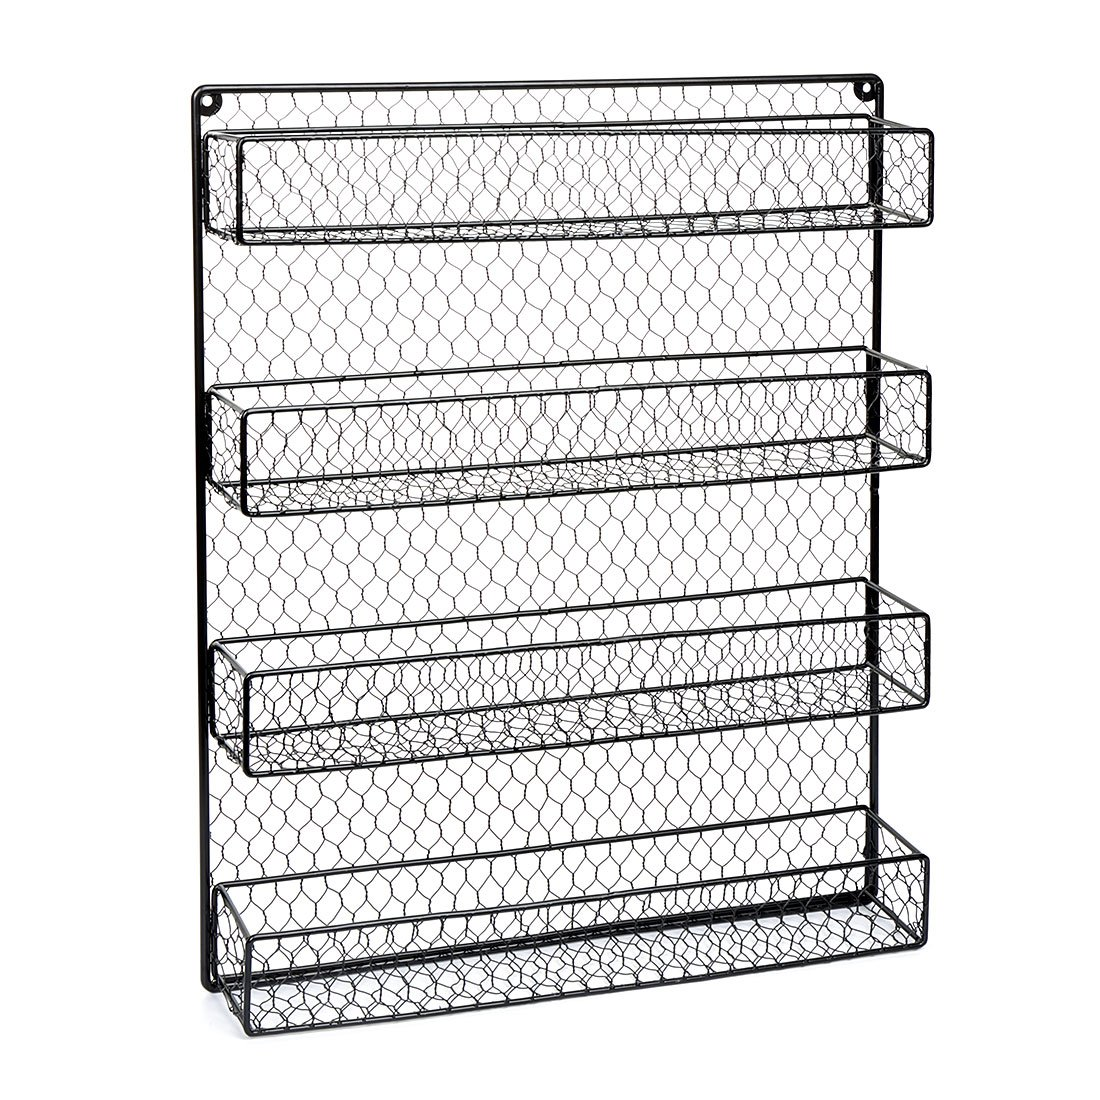 BestValue Go BestValue Go 4 Tier Black Spice Rack Organizer Great Storage for Pantry, Cabinet and Kitchen Country Rustic Chicken Wire Pantry